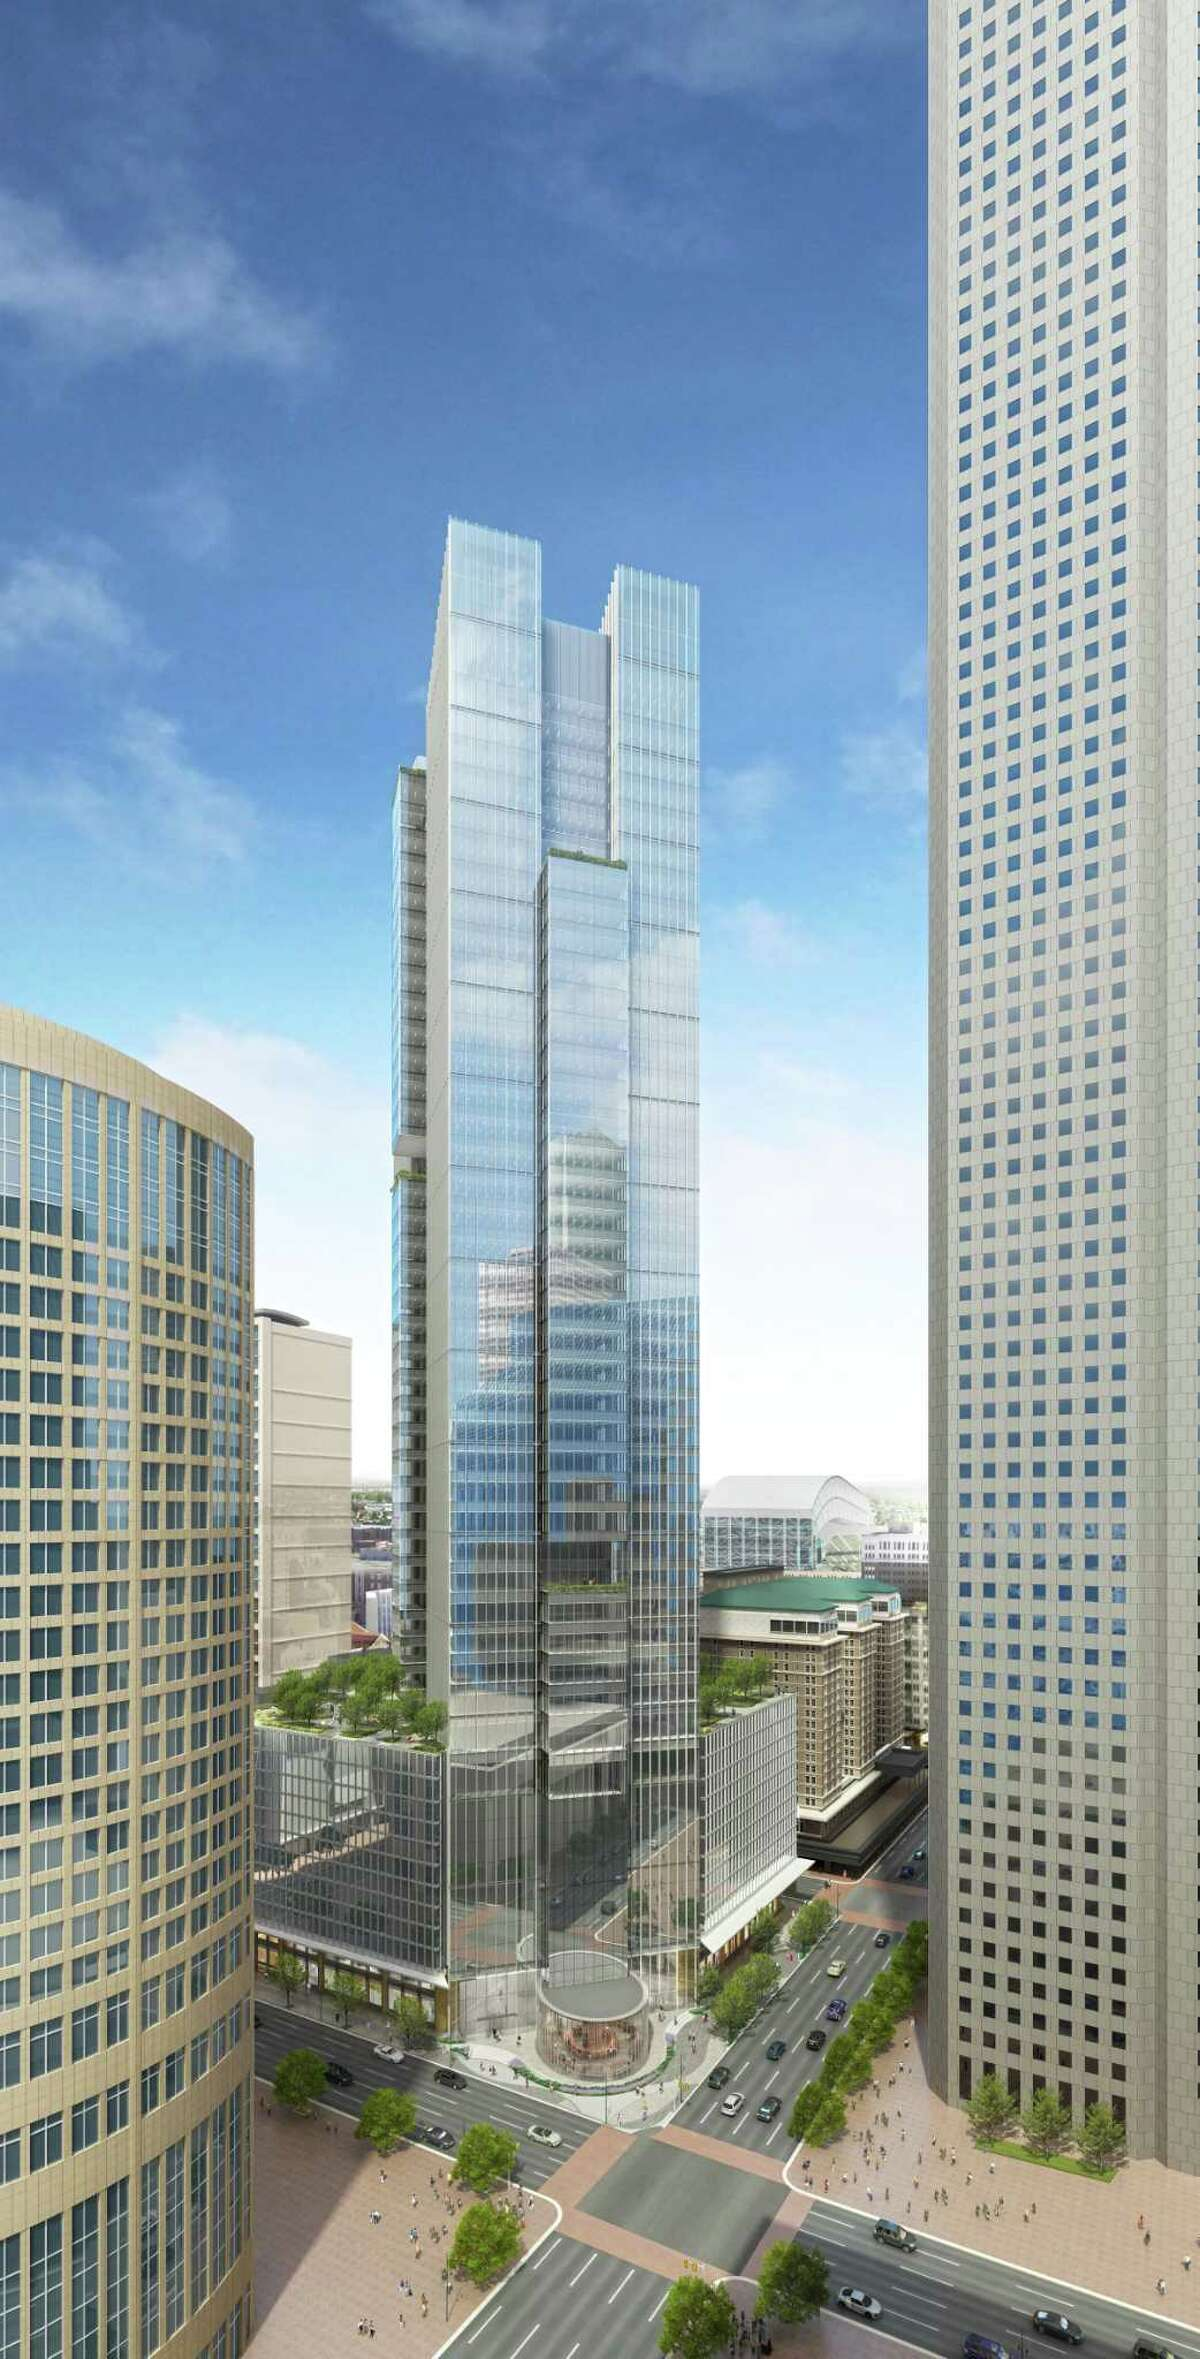 """Hines is breaking ground on a 47-story office tower downtown it says will be a ?""""next-generation?"""" building, drawing from research and best practices from its other properties around the world. The building will provide multiple gathering spaces, co-working options and a unique design where it will be diagonally positioned on a square downtown block and offer glass-enclosed ?""""sky atriums?"""" that tenants can customize."""